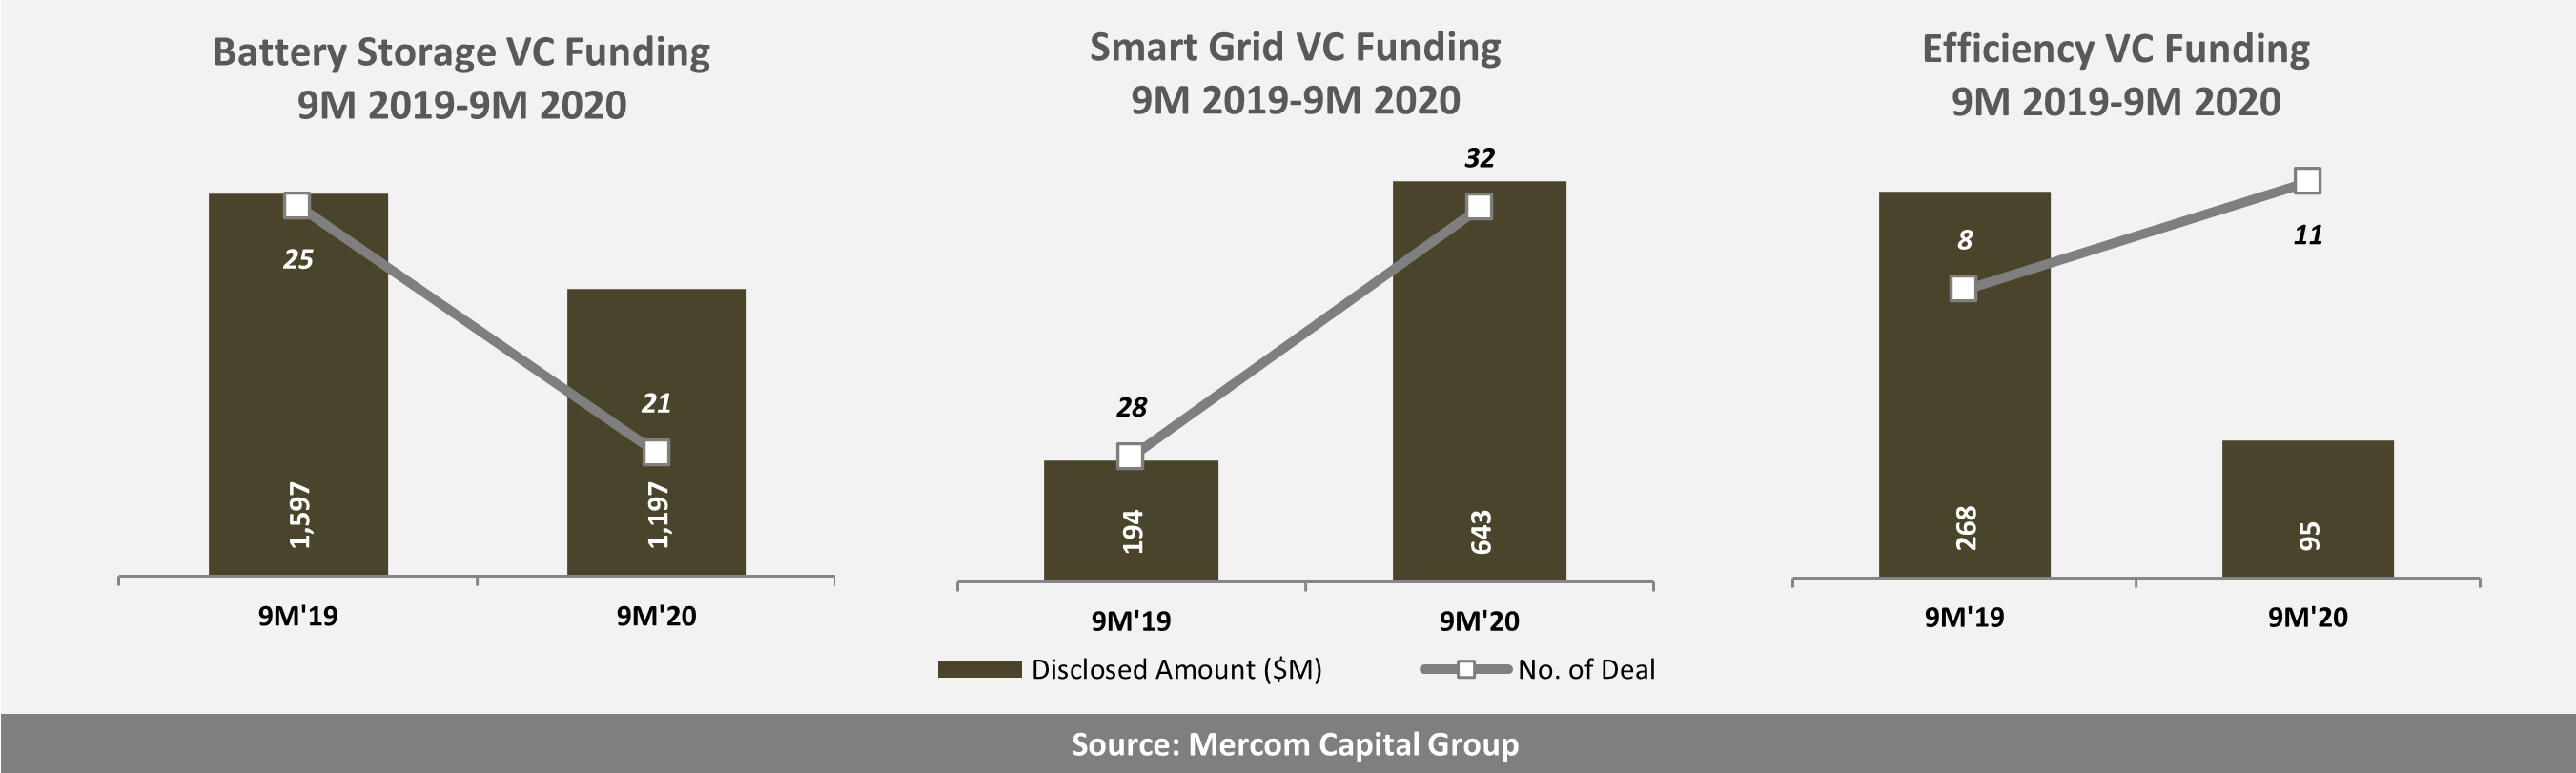 Battery Storage Smart Grid and Energy Efficiency VC Funding